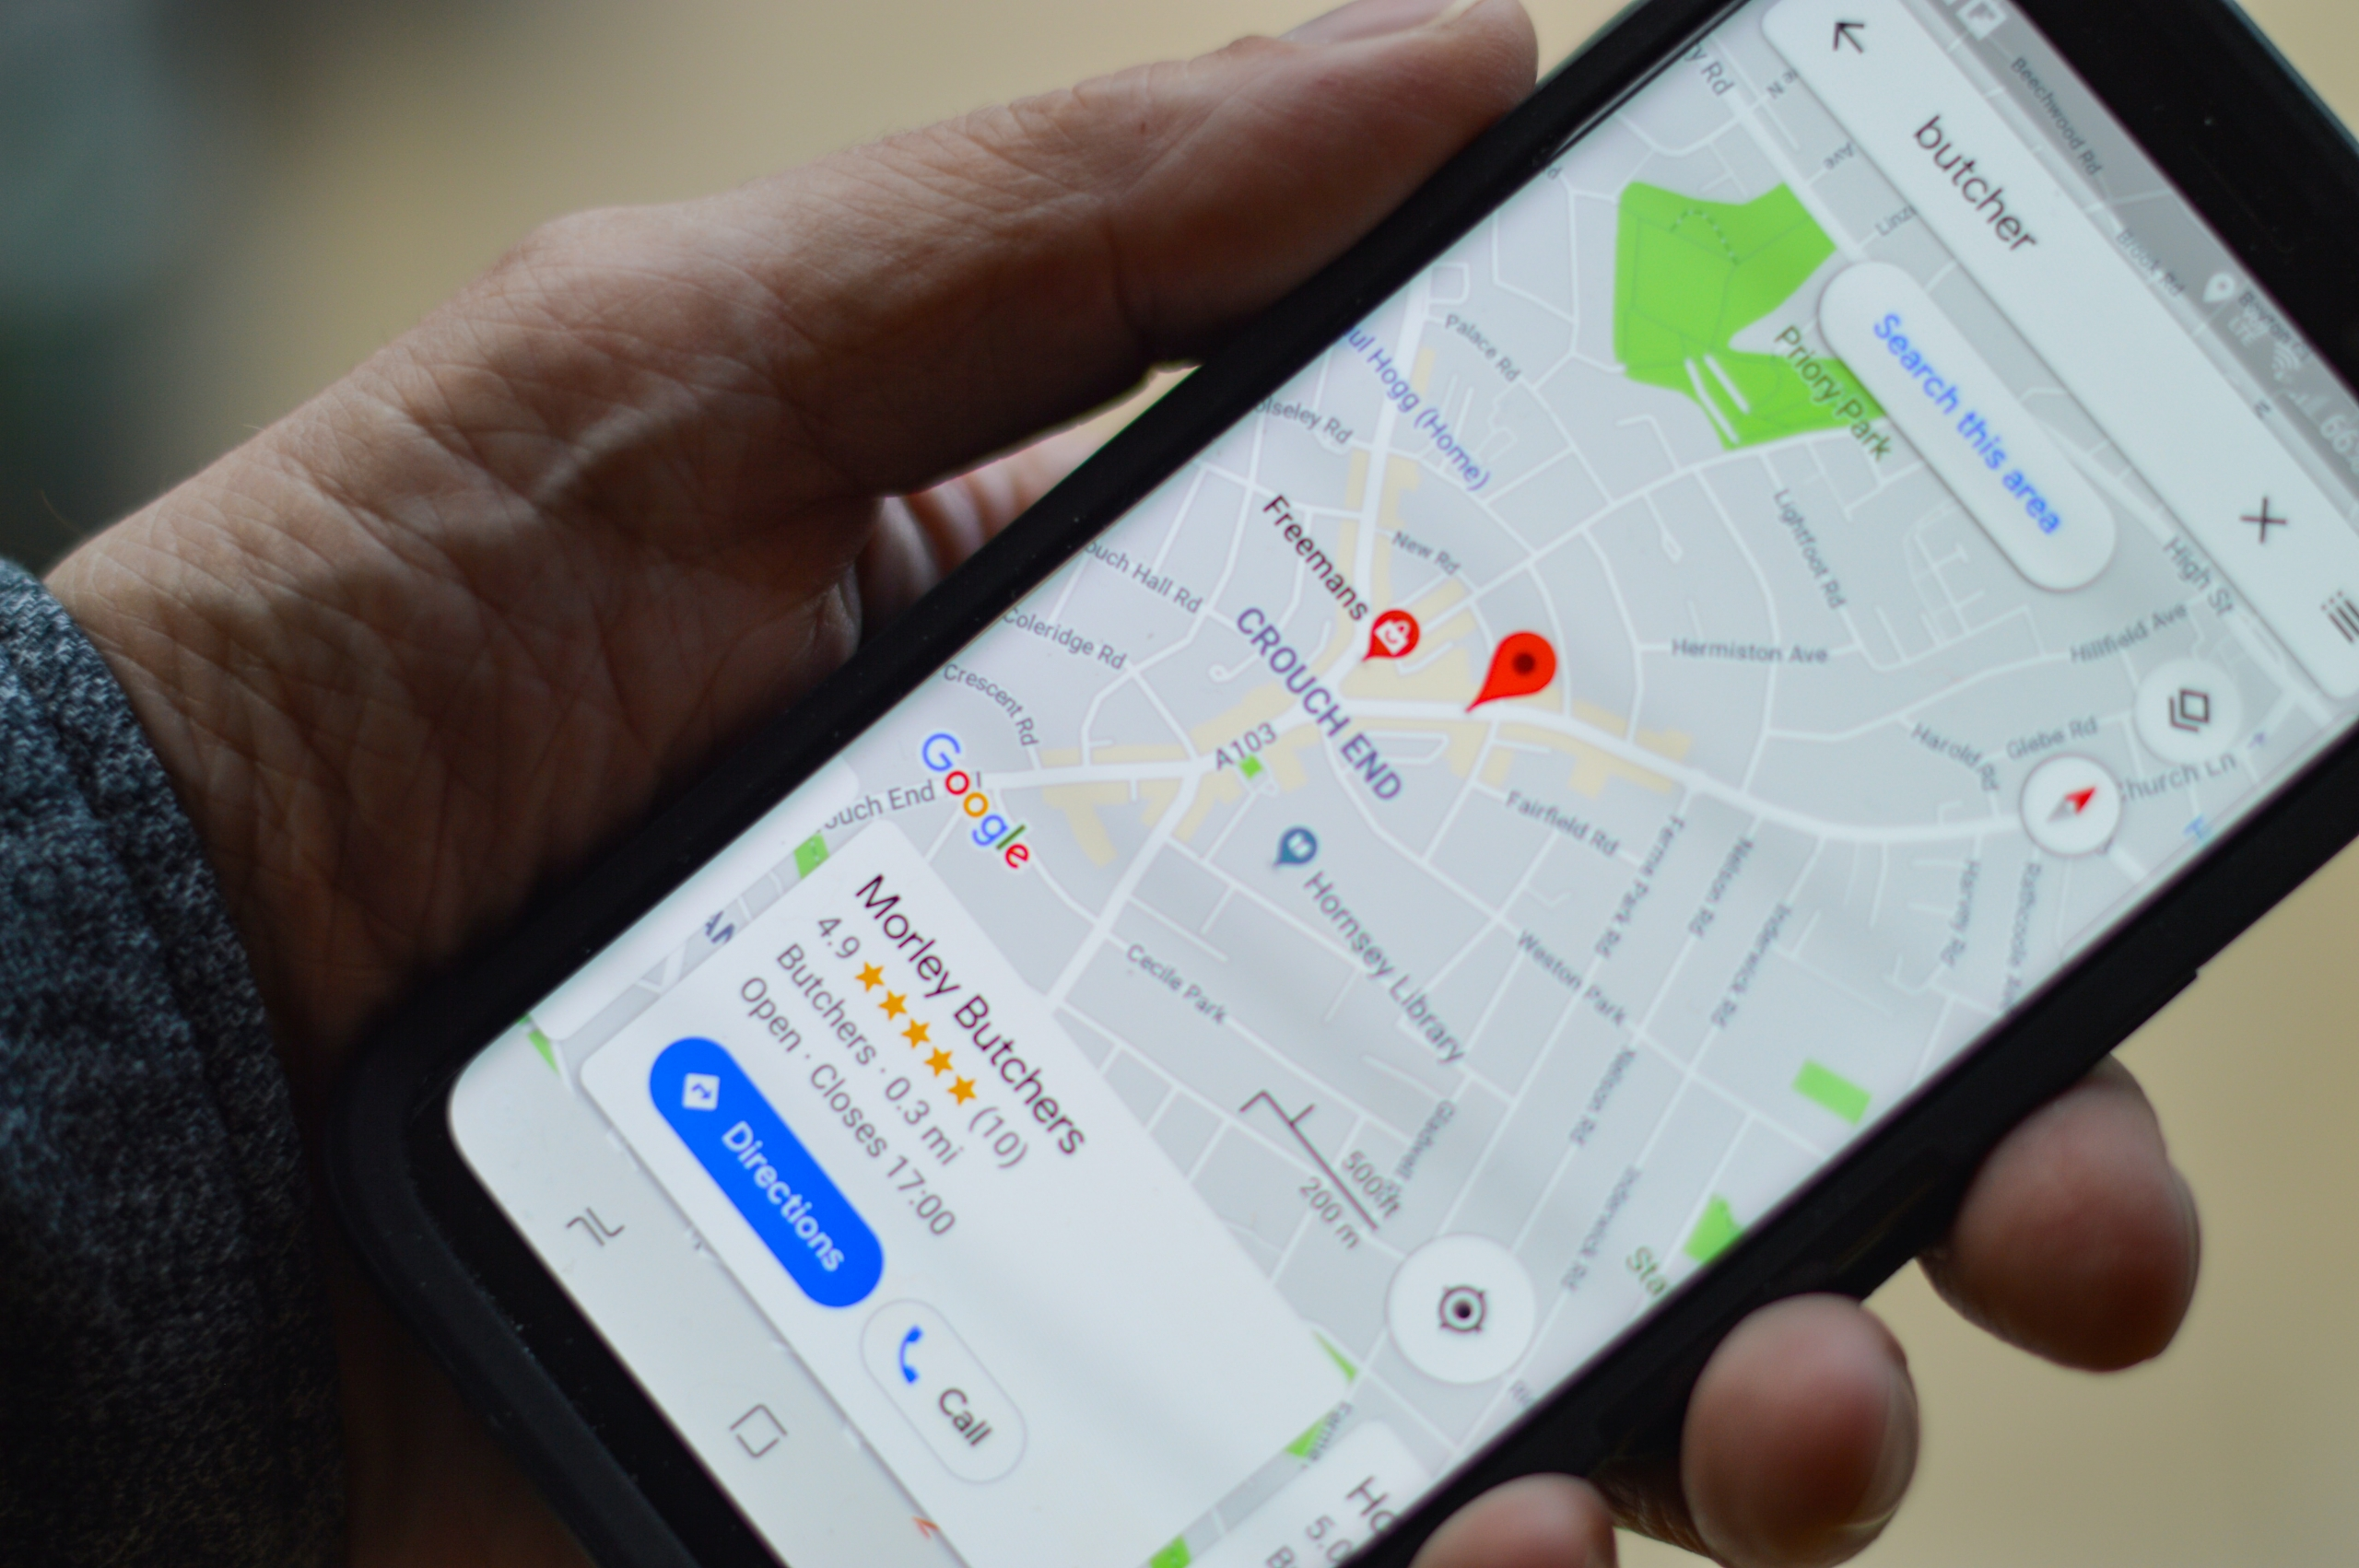 google maps and review of Morley butchers